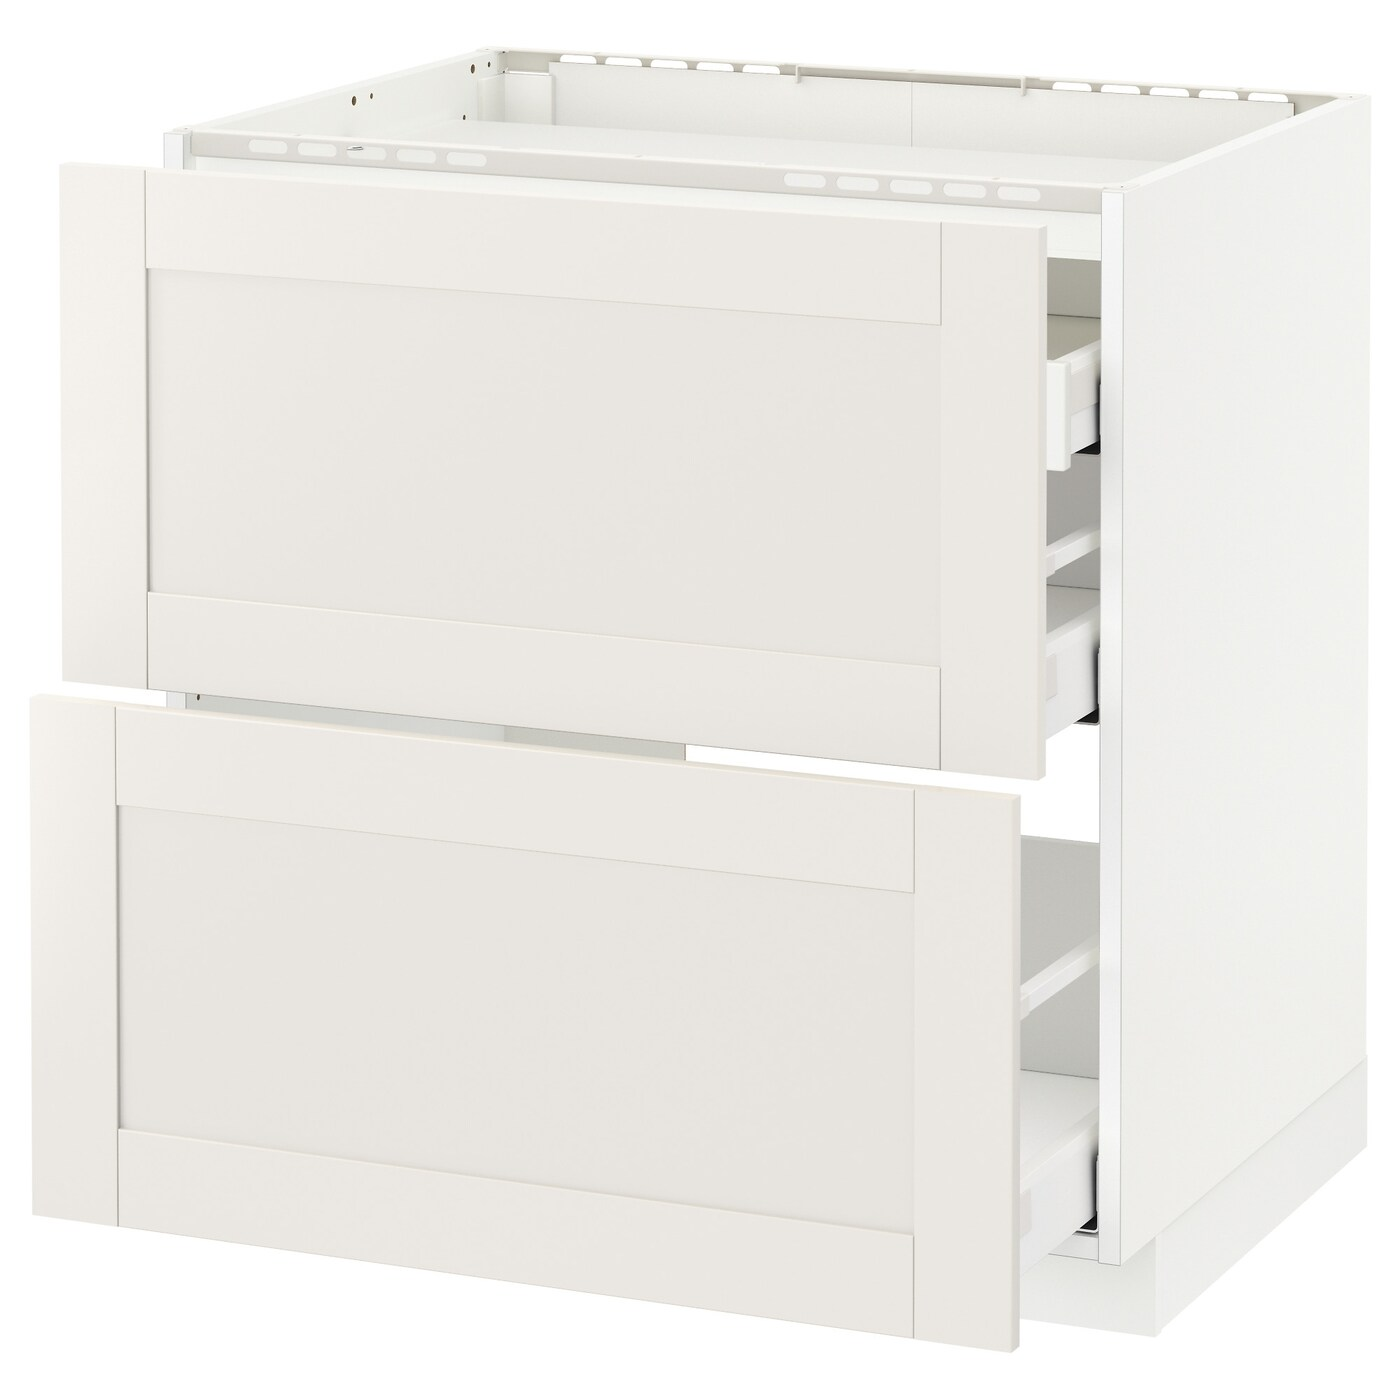 Ikea Sävedal Metod Maximera Base Cab F Hob 2 Fronts 3 Drawers White Sävedal White